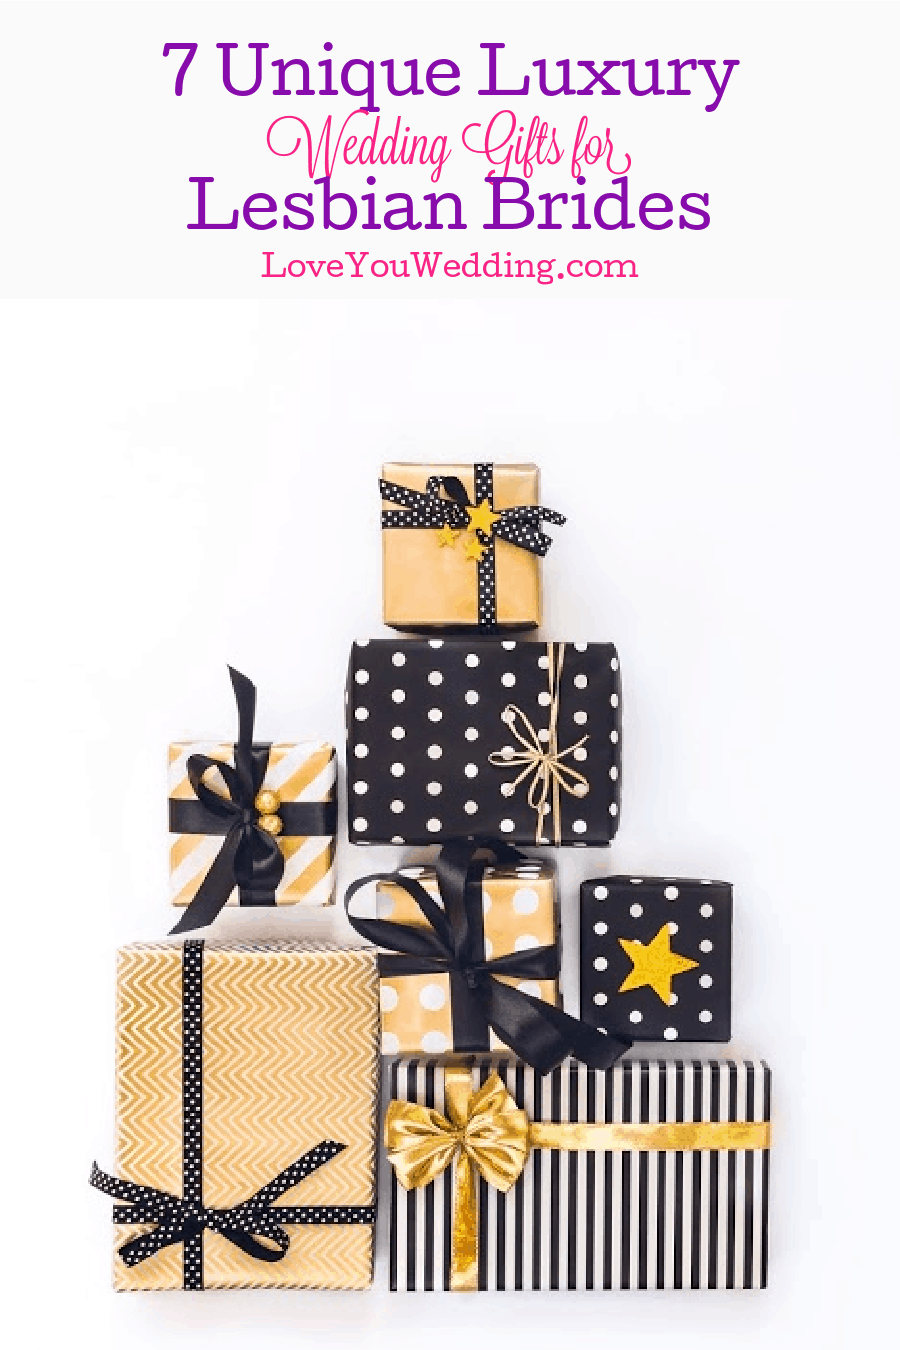 Hunting for some unique luxury wedding gifts for lesbian bride? Check out these 7 incredible ideas that she'll absolutely go gaga over!